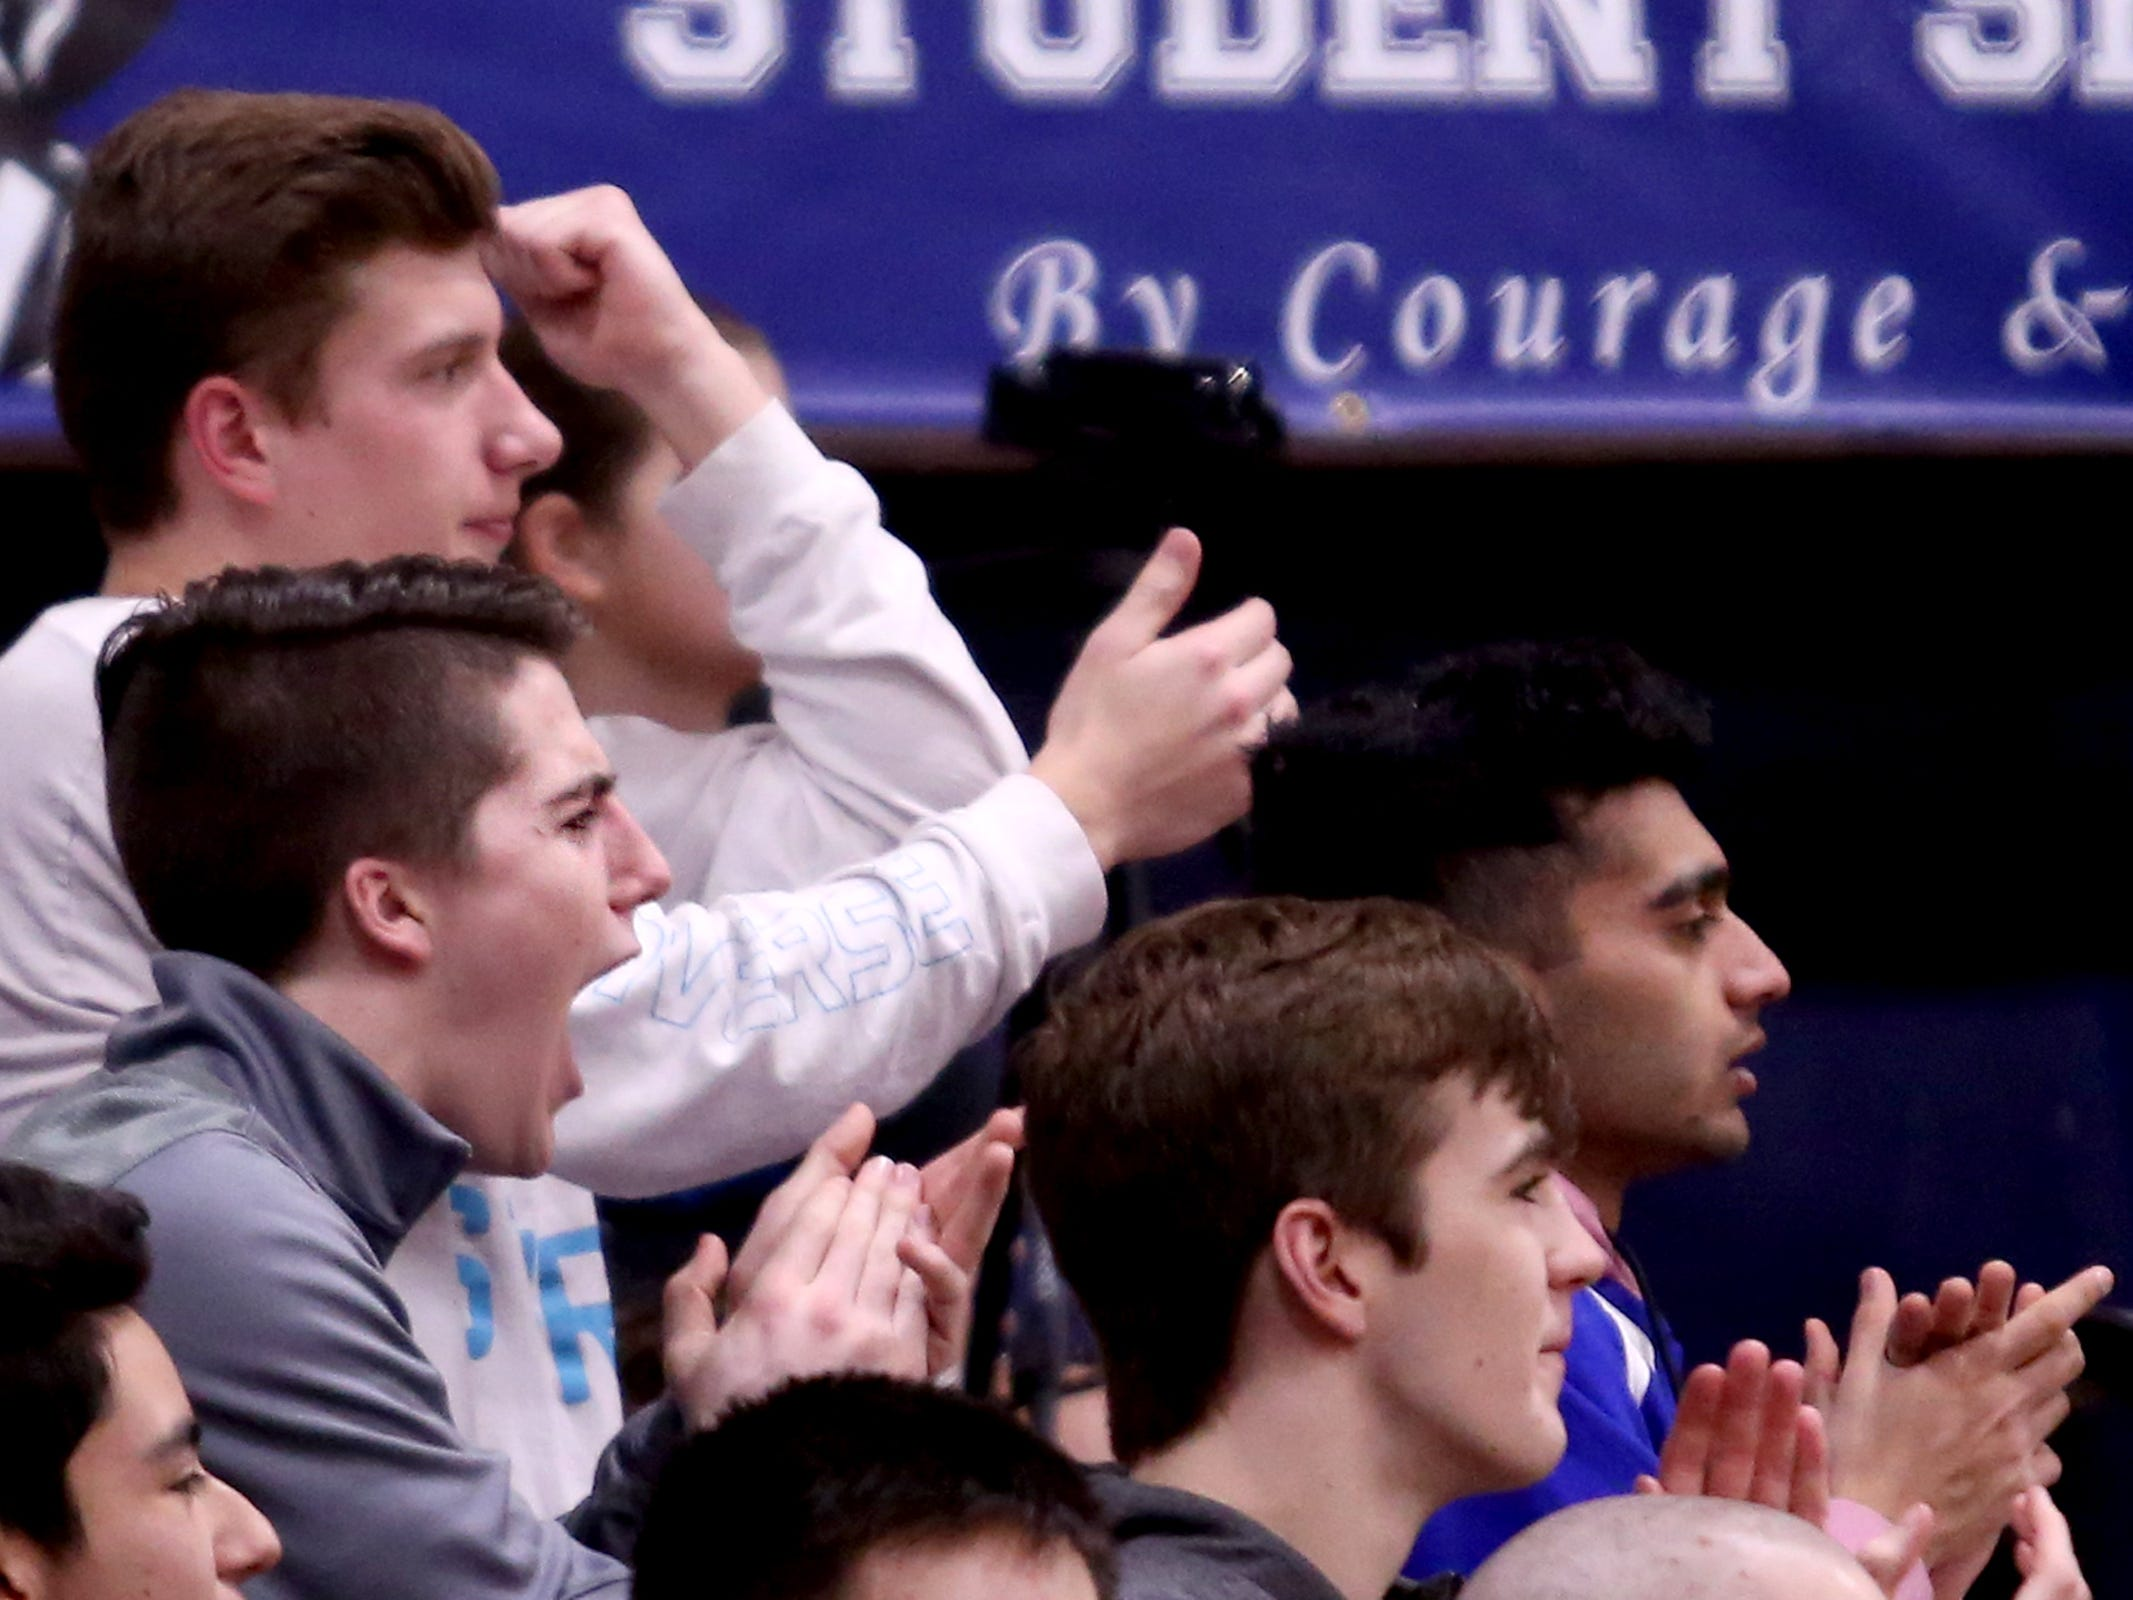 Blanchet Catholic fans celebrate a play in the first half of the Salem Academy vs. Blanchet Catholic girls basketball game at Blanchet Catholic School in Salem on Friday, Jan. 18, 2019. Blanchet Catholic won the gam 48-40.